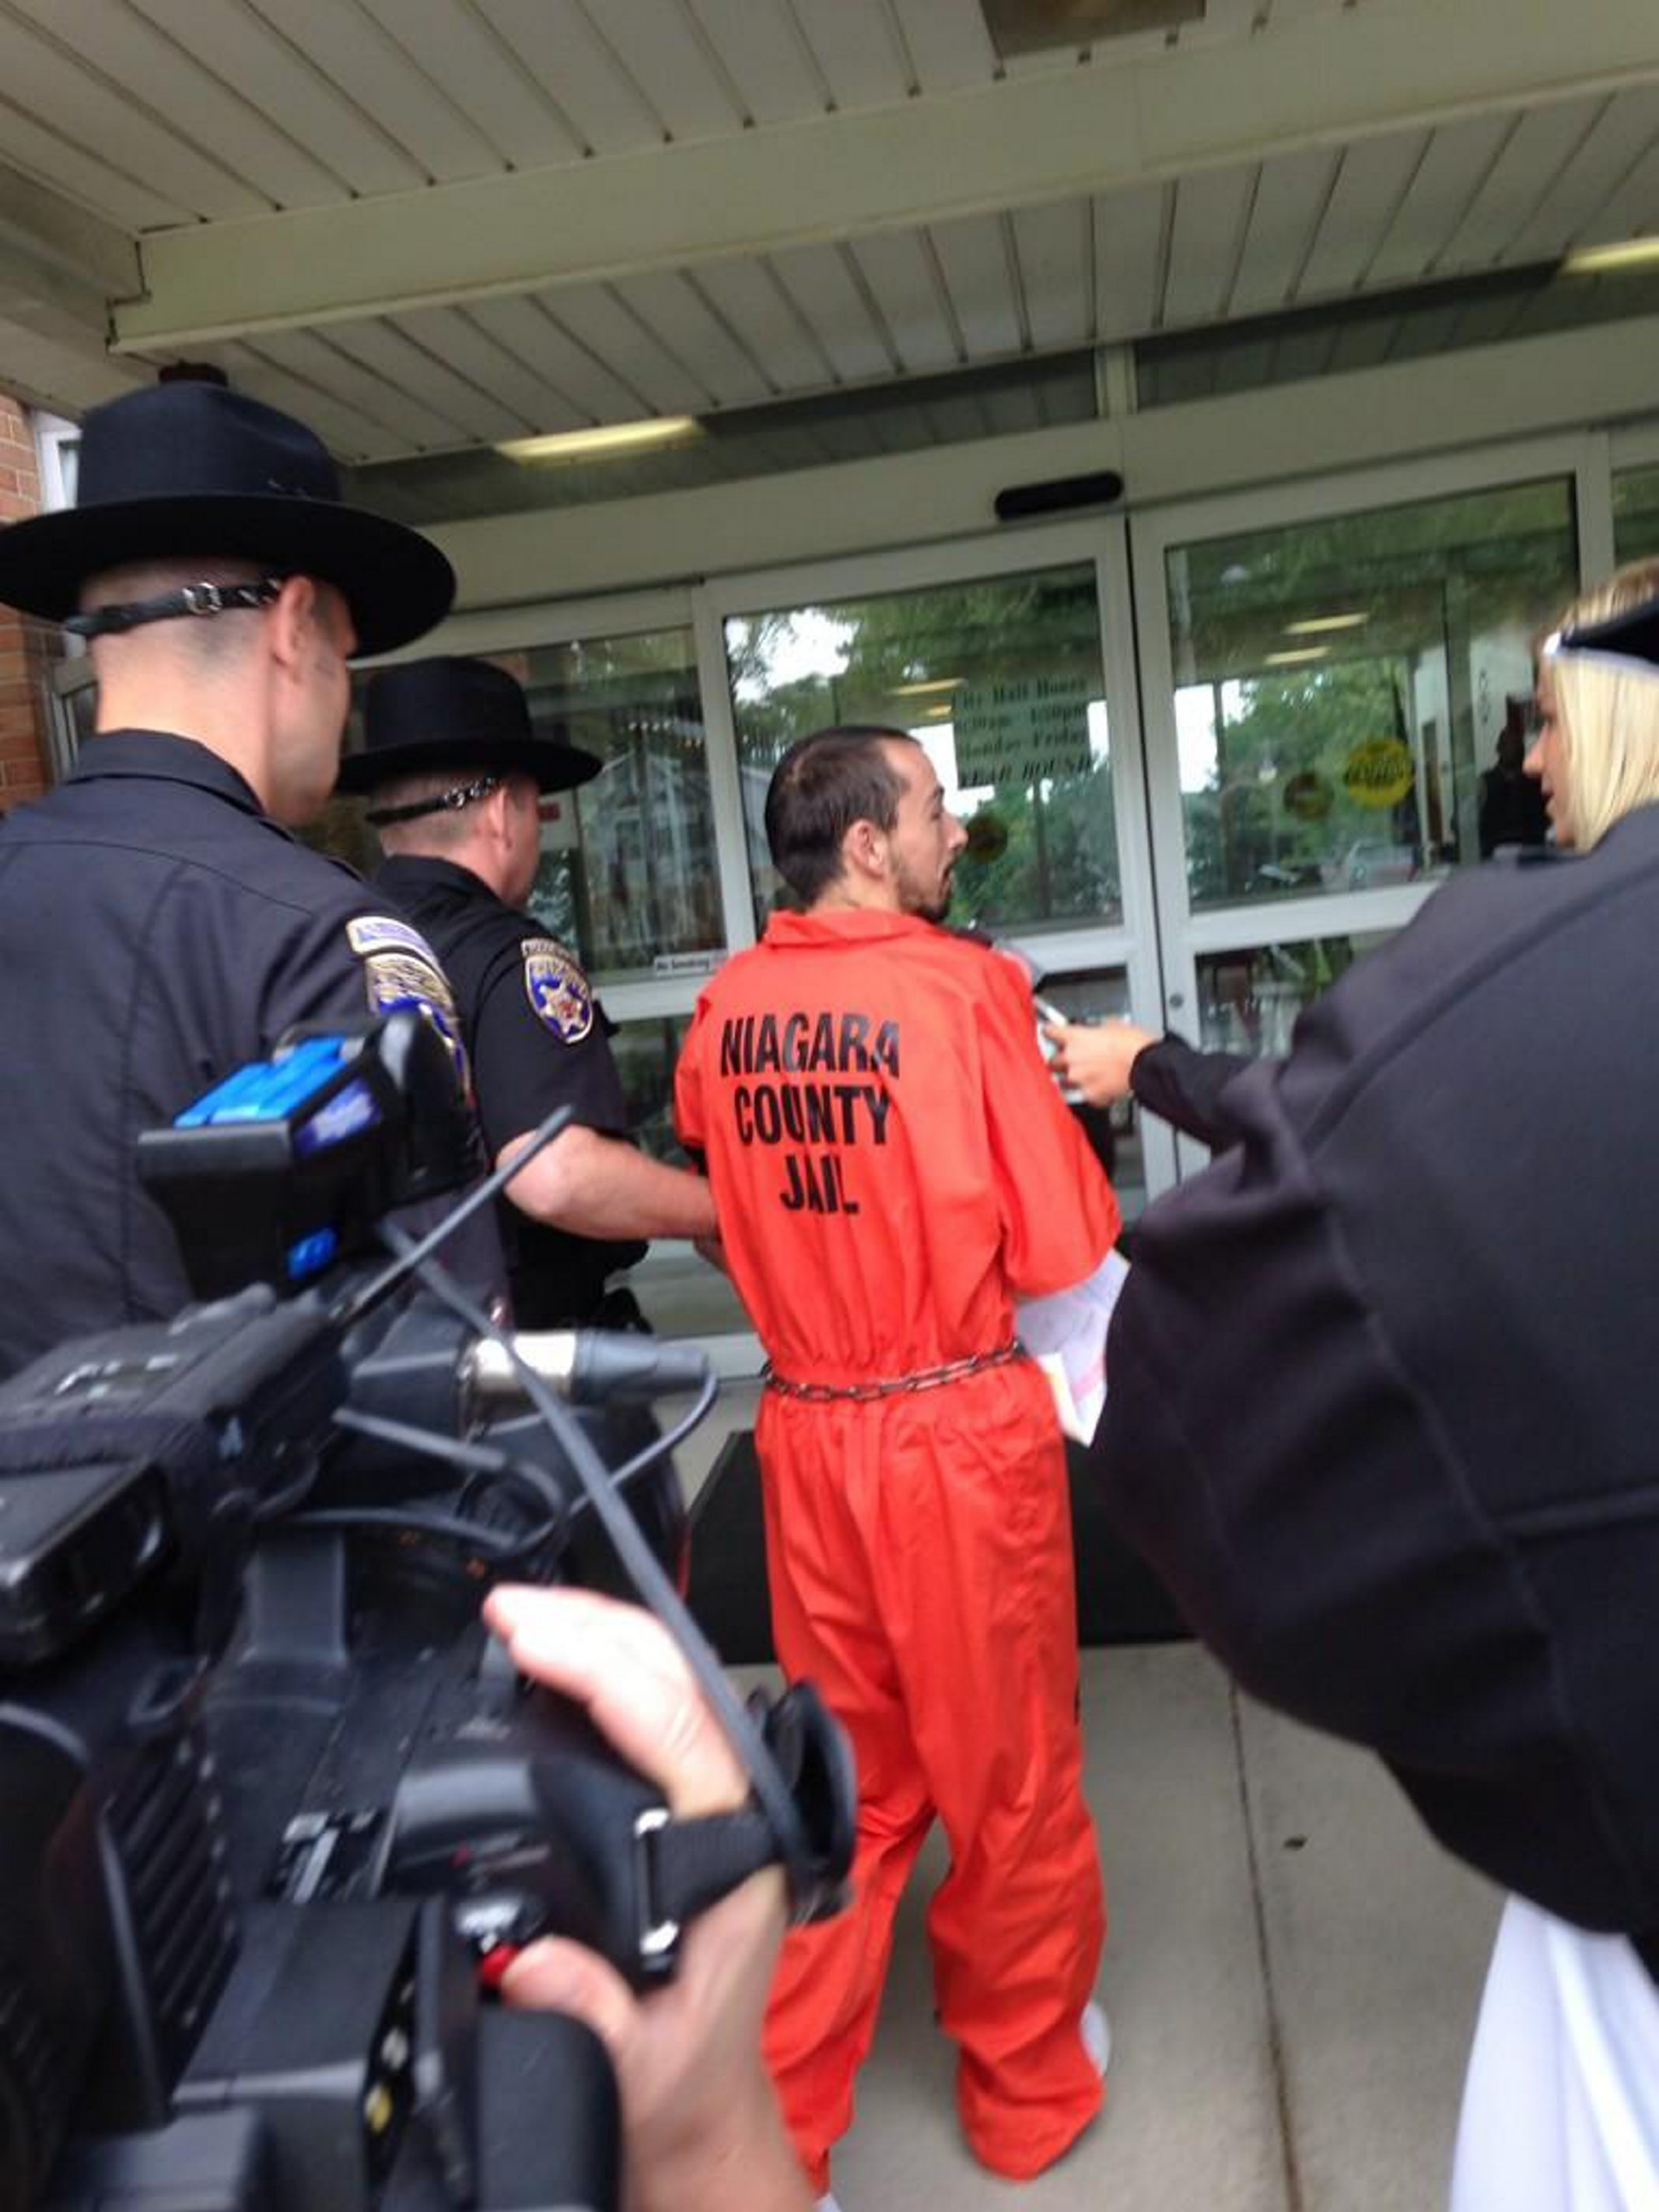 Arson suspect Christopher Syracuse is led into City of Tonawanda court today. (Lisa Khoury)